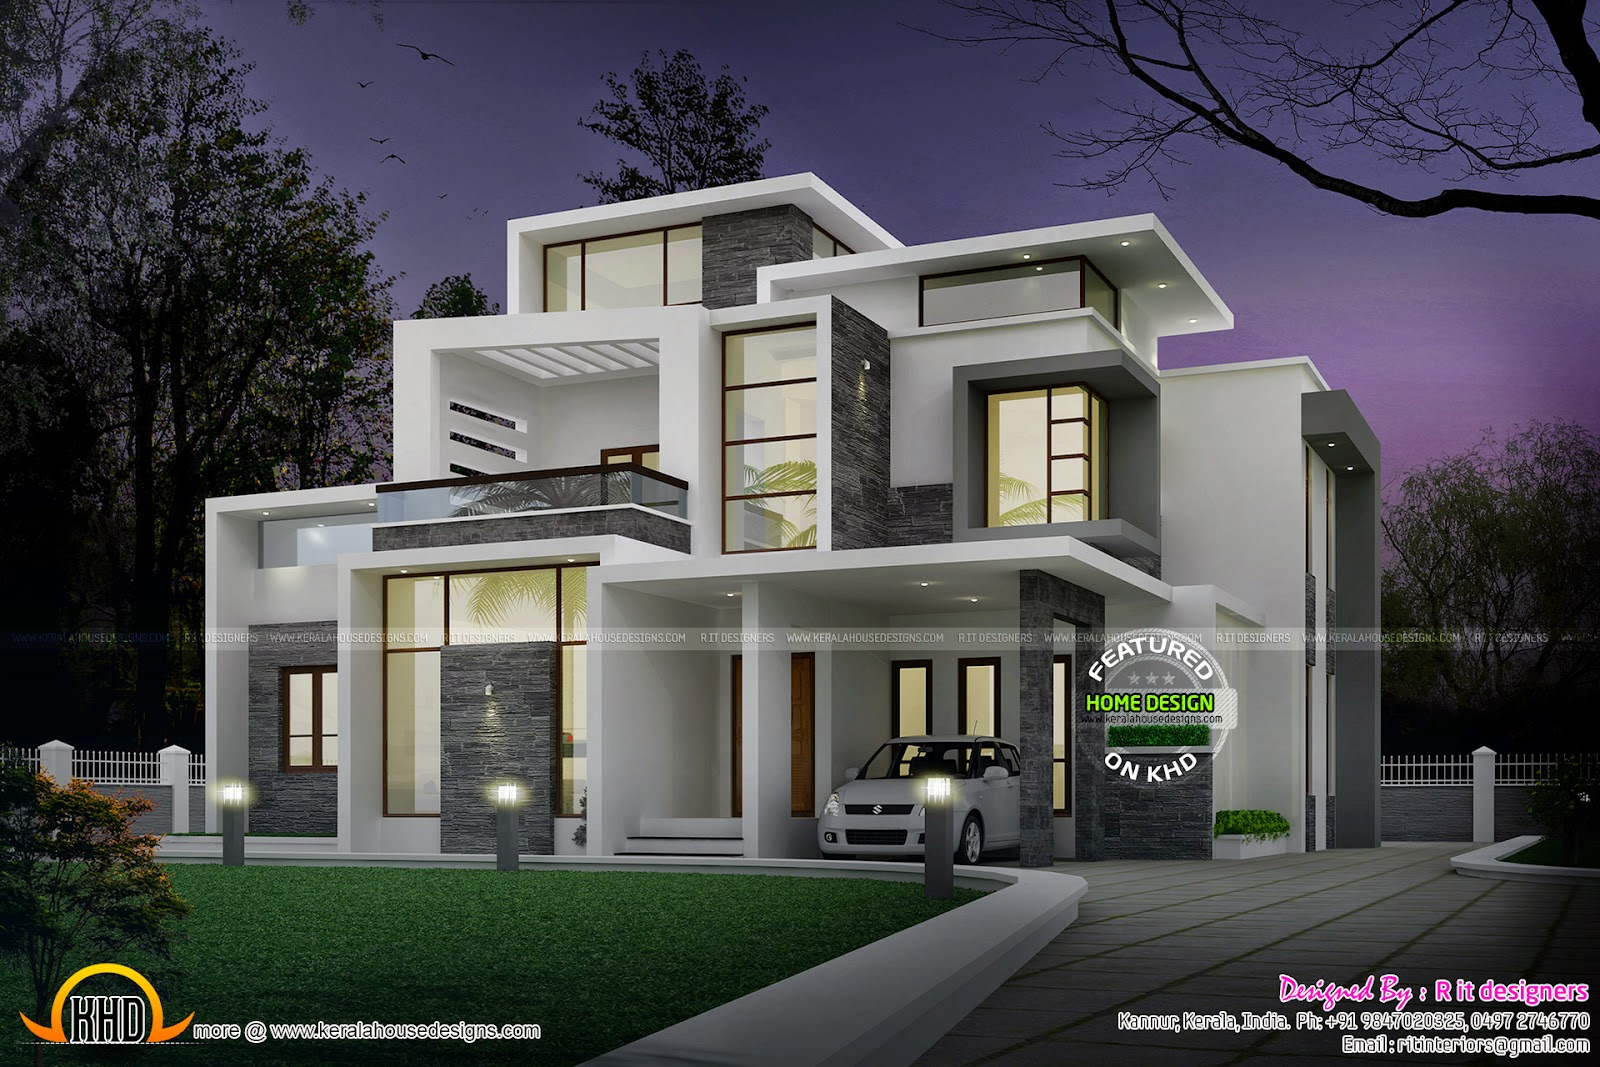 grand contemporary home design kerala home design floor plans floor plans amazing finished bat floor plans custom home floor plans